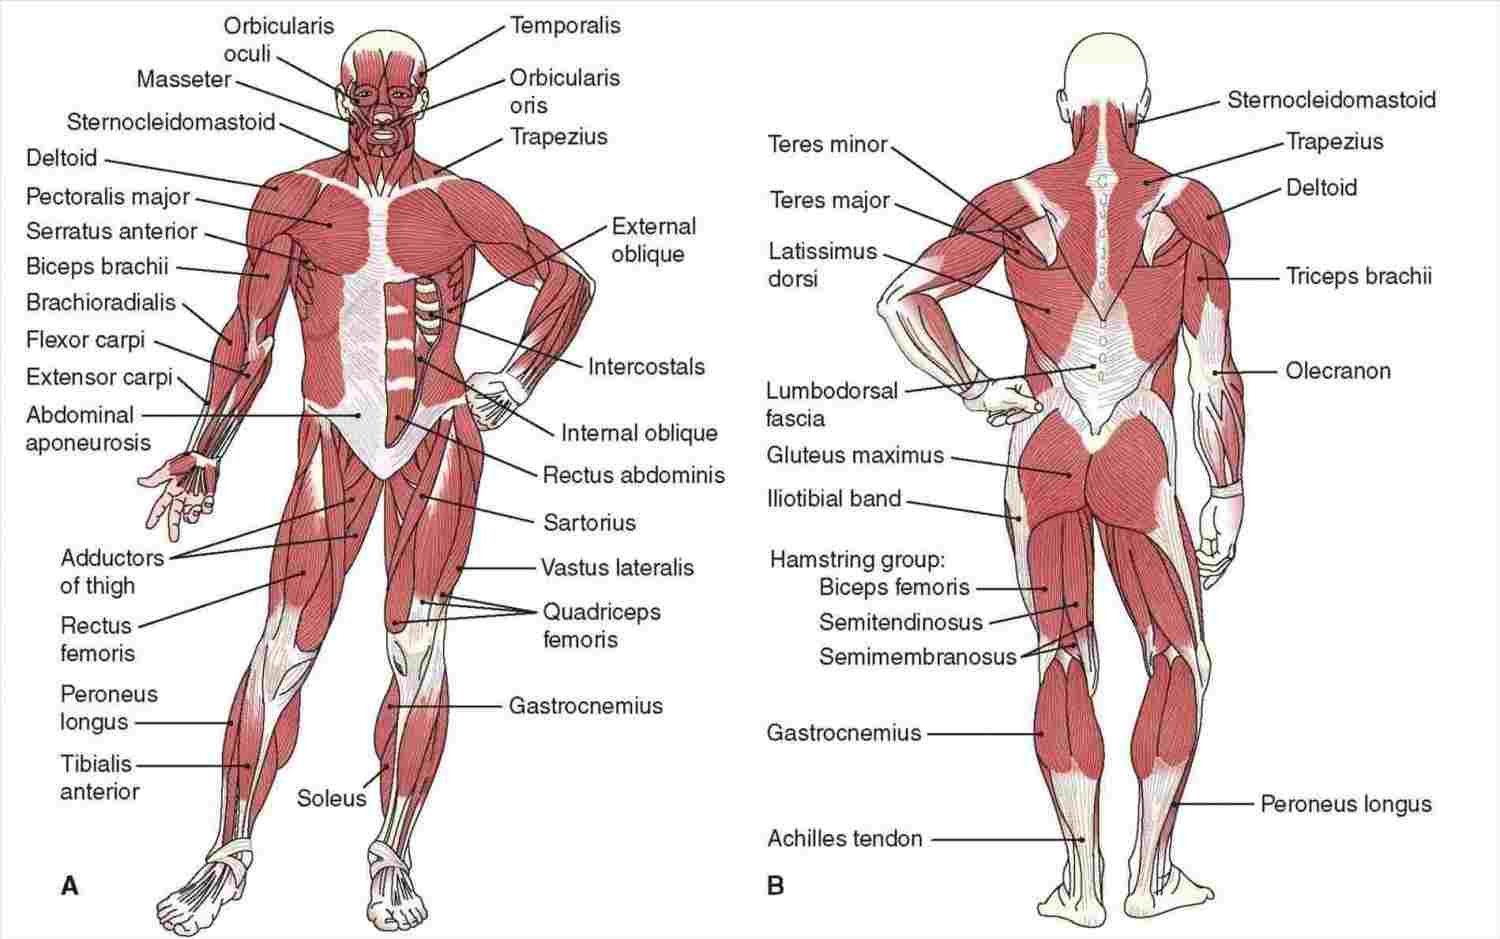 Human Muscle Diagram Human Anatomy Back Muscles Diagram Labeled Diagram Of Anatomy